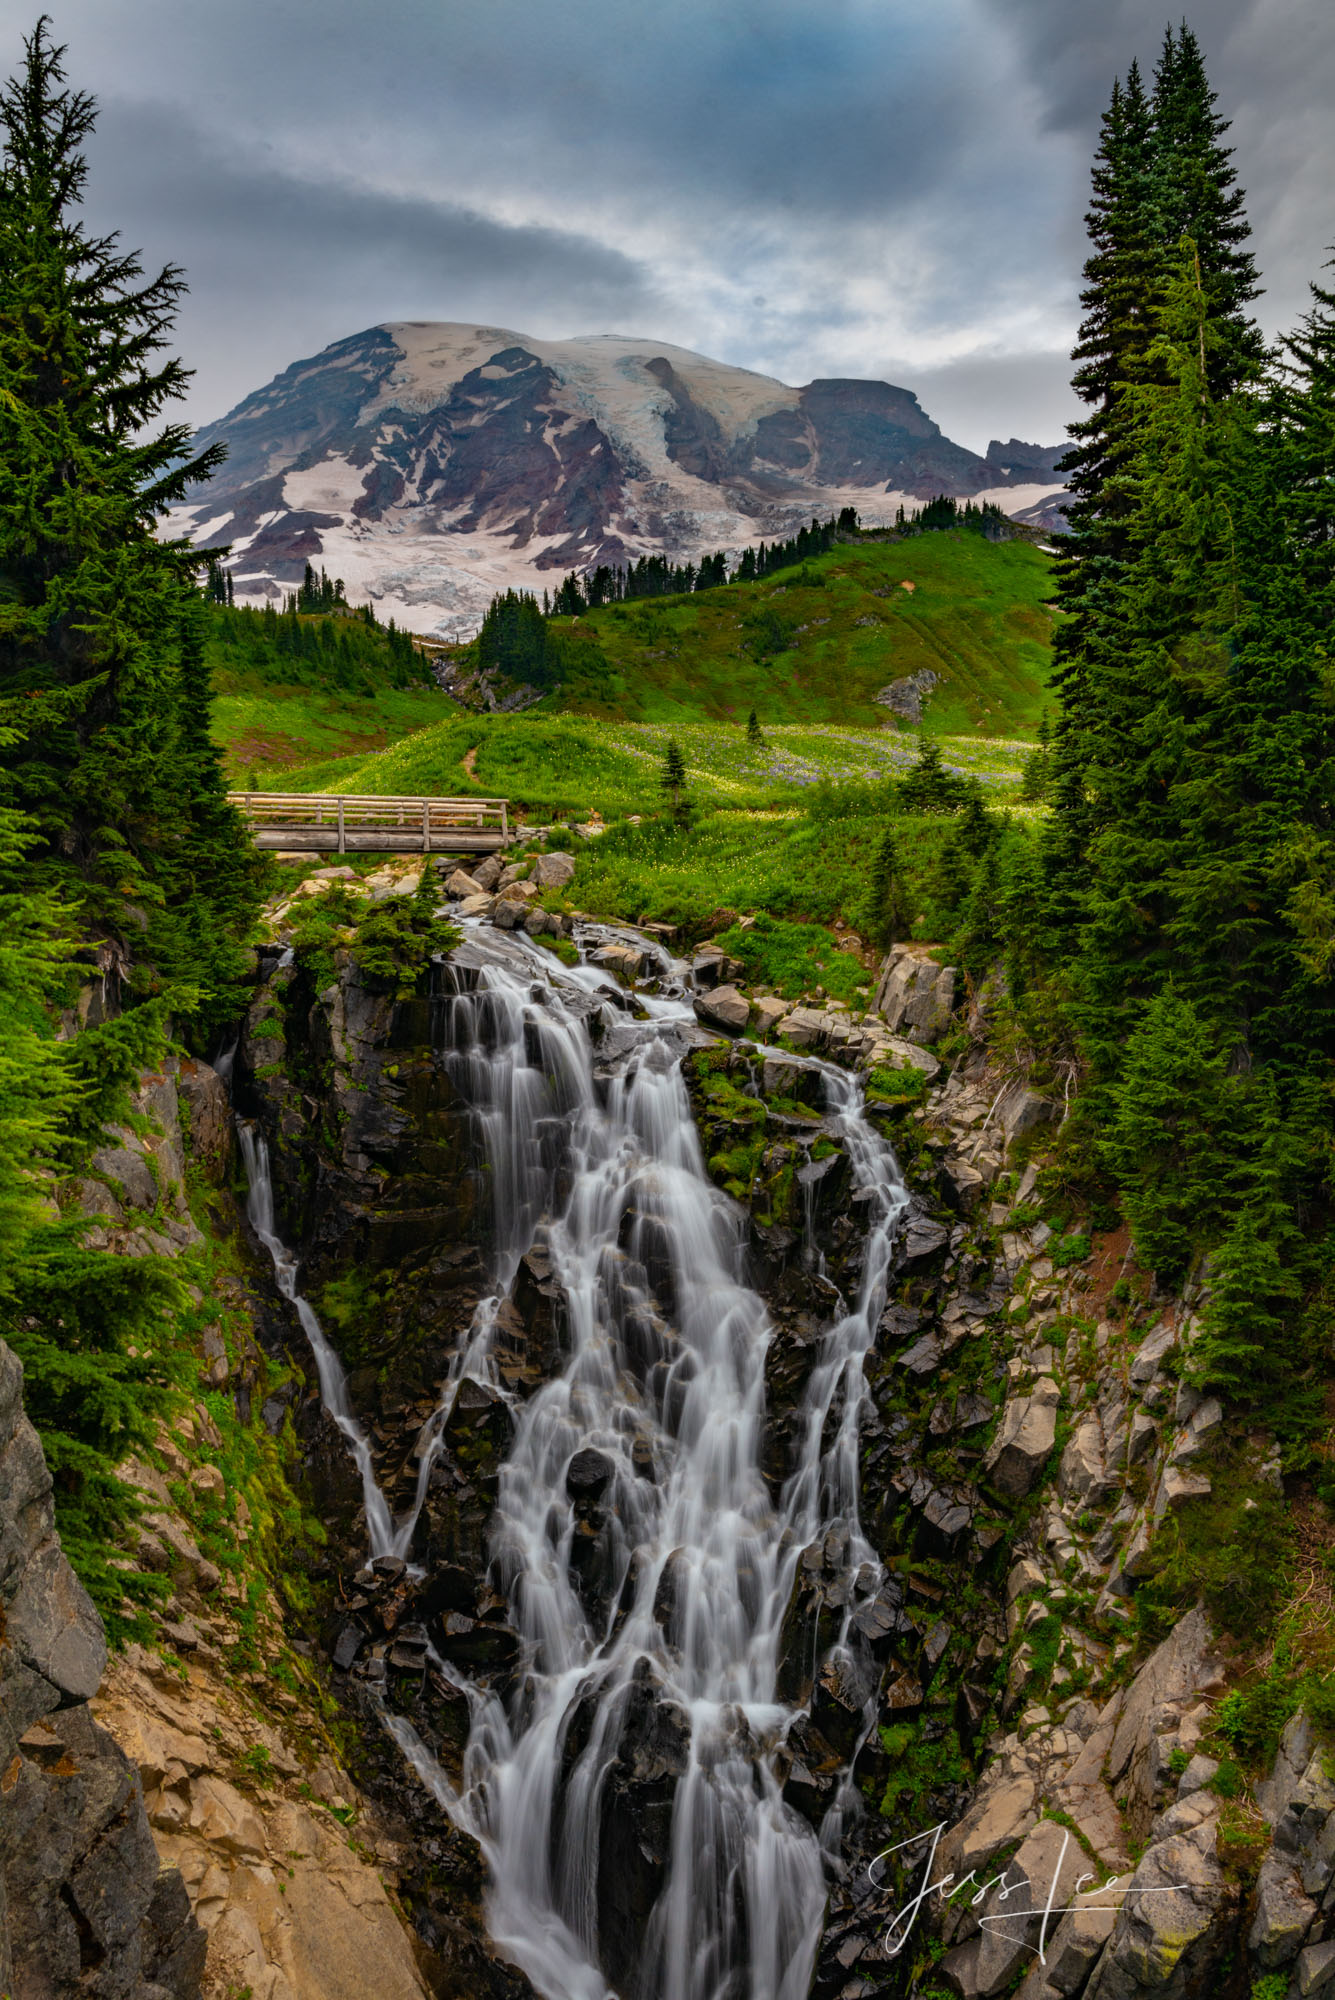 Beautify  your space  with Jess Lee's limited edition photography print, Beyond the Bridge, from his Mount Rainier Gallery ....